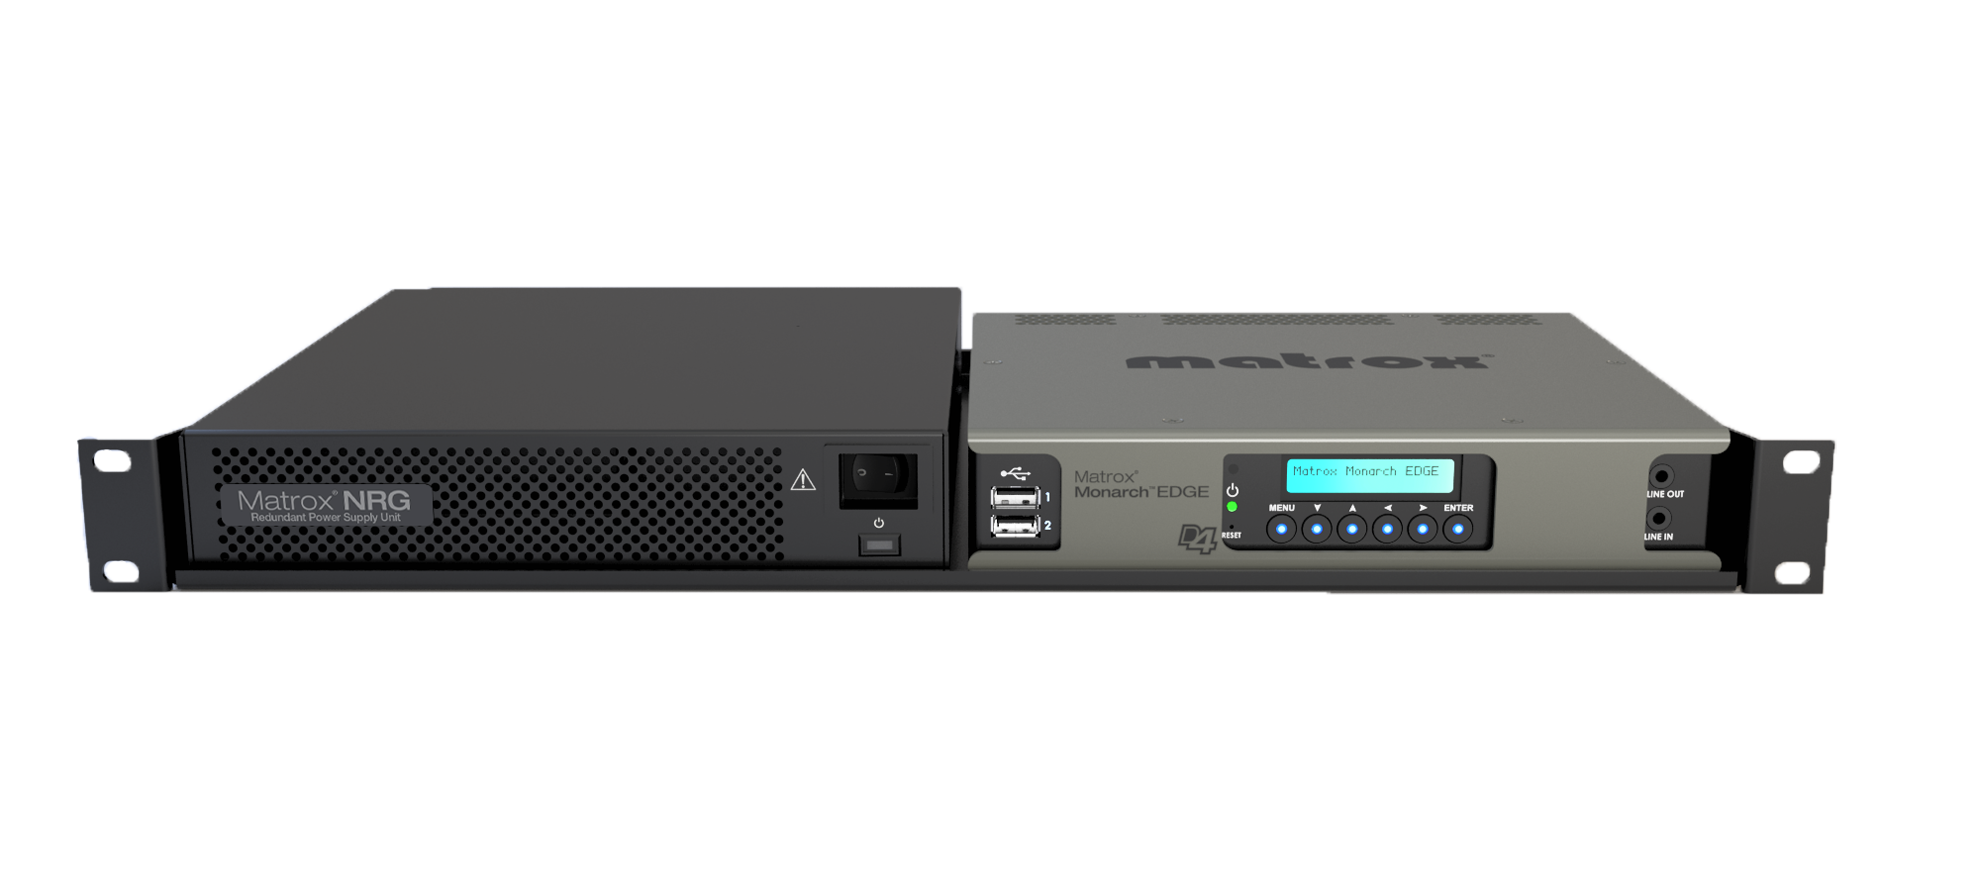 Matrox NRG and Monarch EDGE side-by-side on a rack.